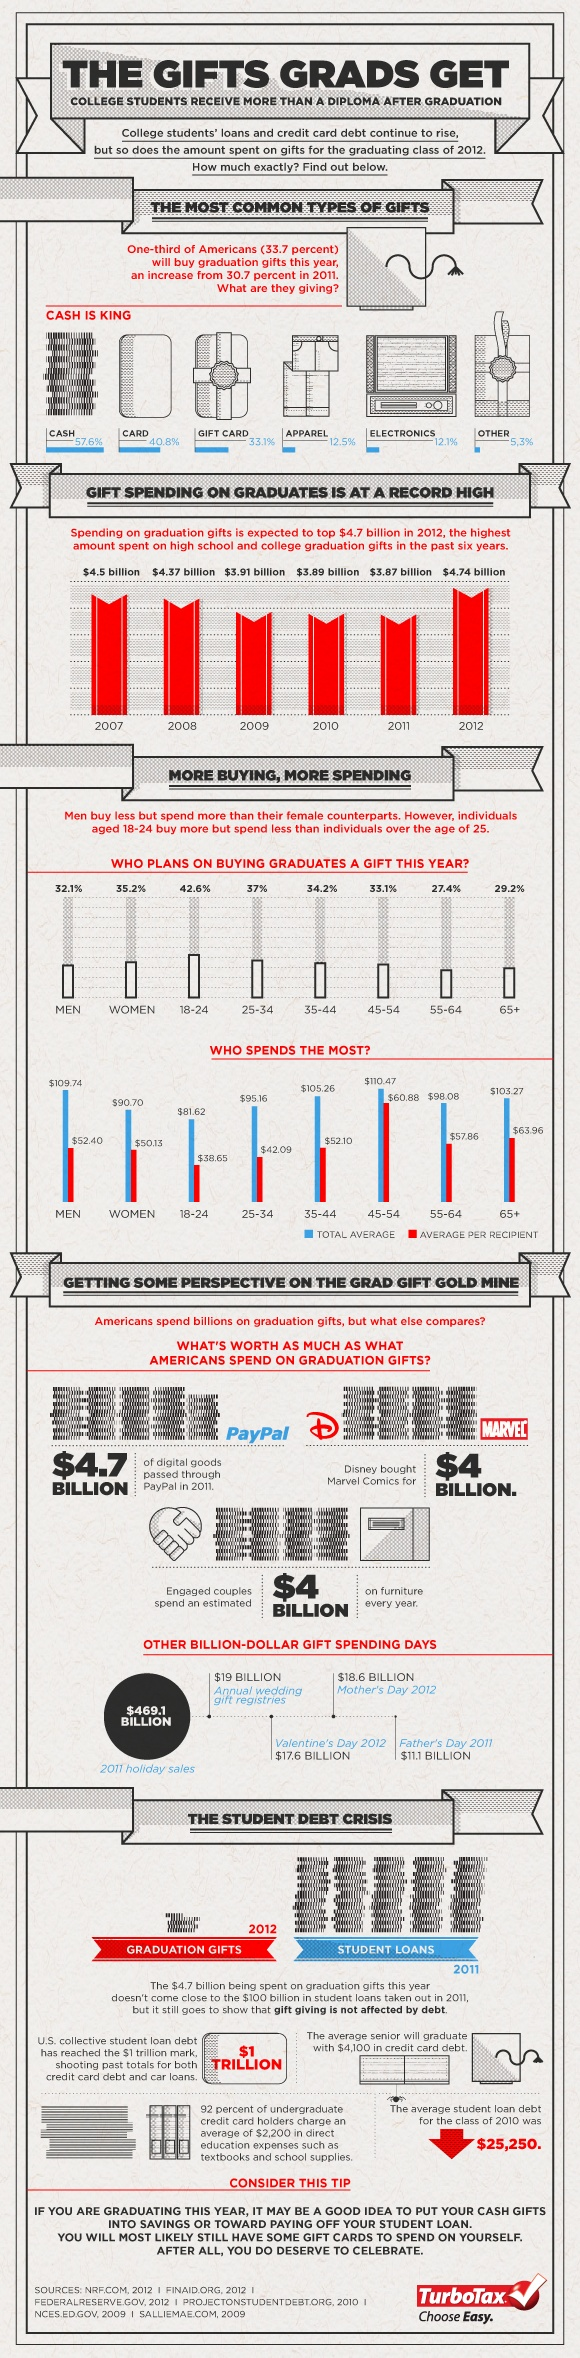 College Grads and Gifts That Keep Giving [Infographic] | Tax Break: The TurboTax Blog